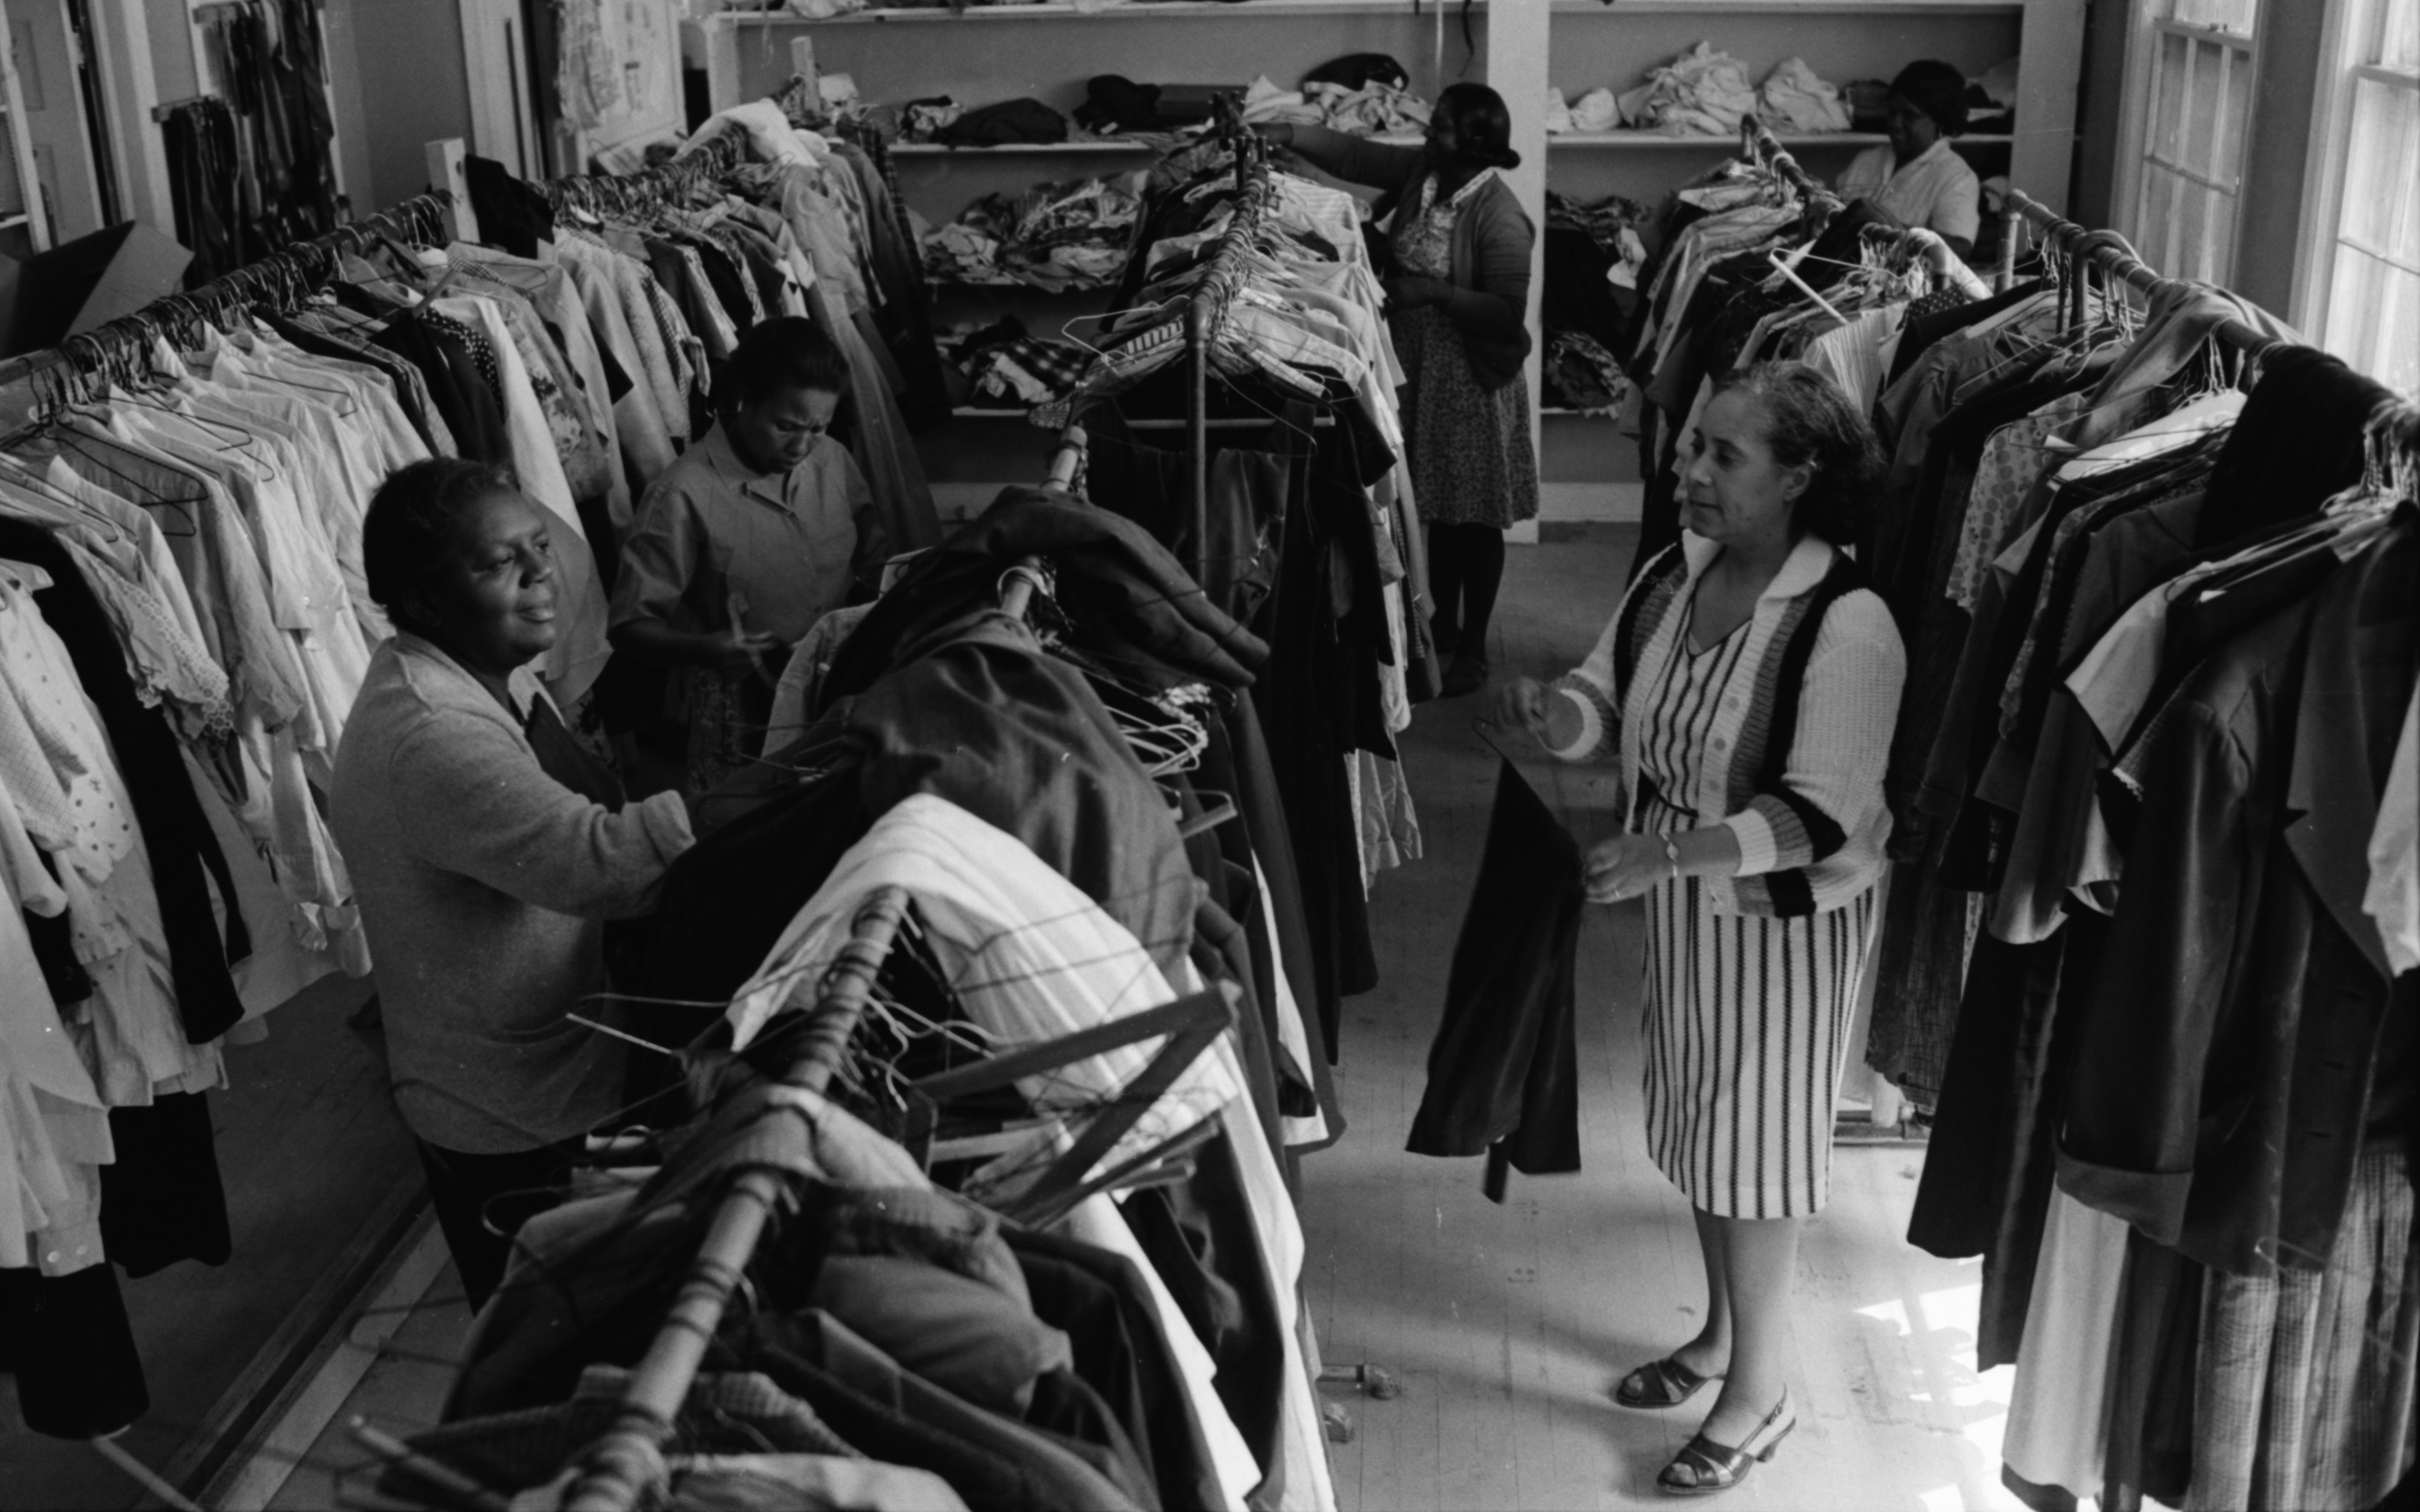 Volunteers help hang clothes at the Sumpter Clothing Center, June 1969 image